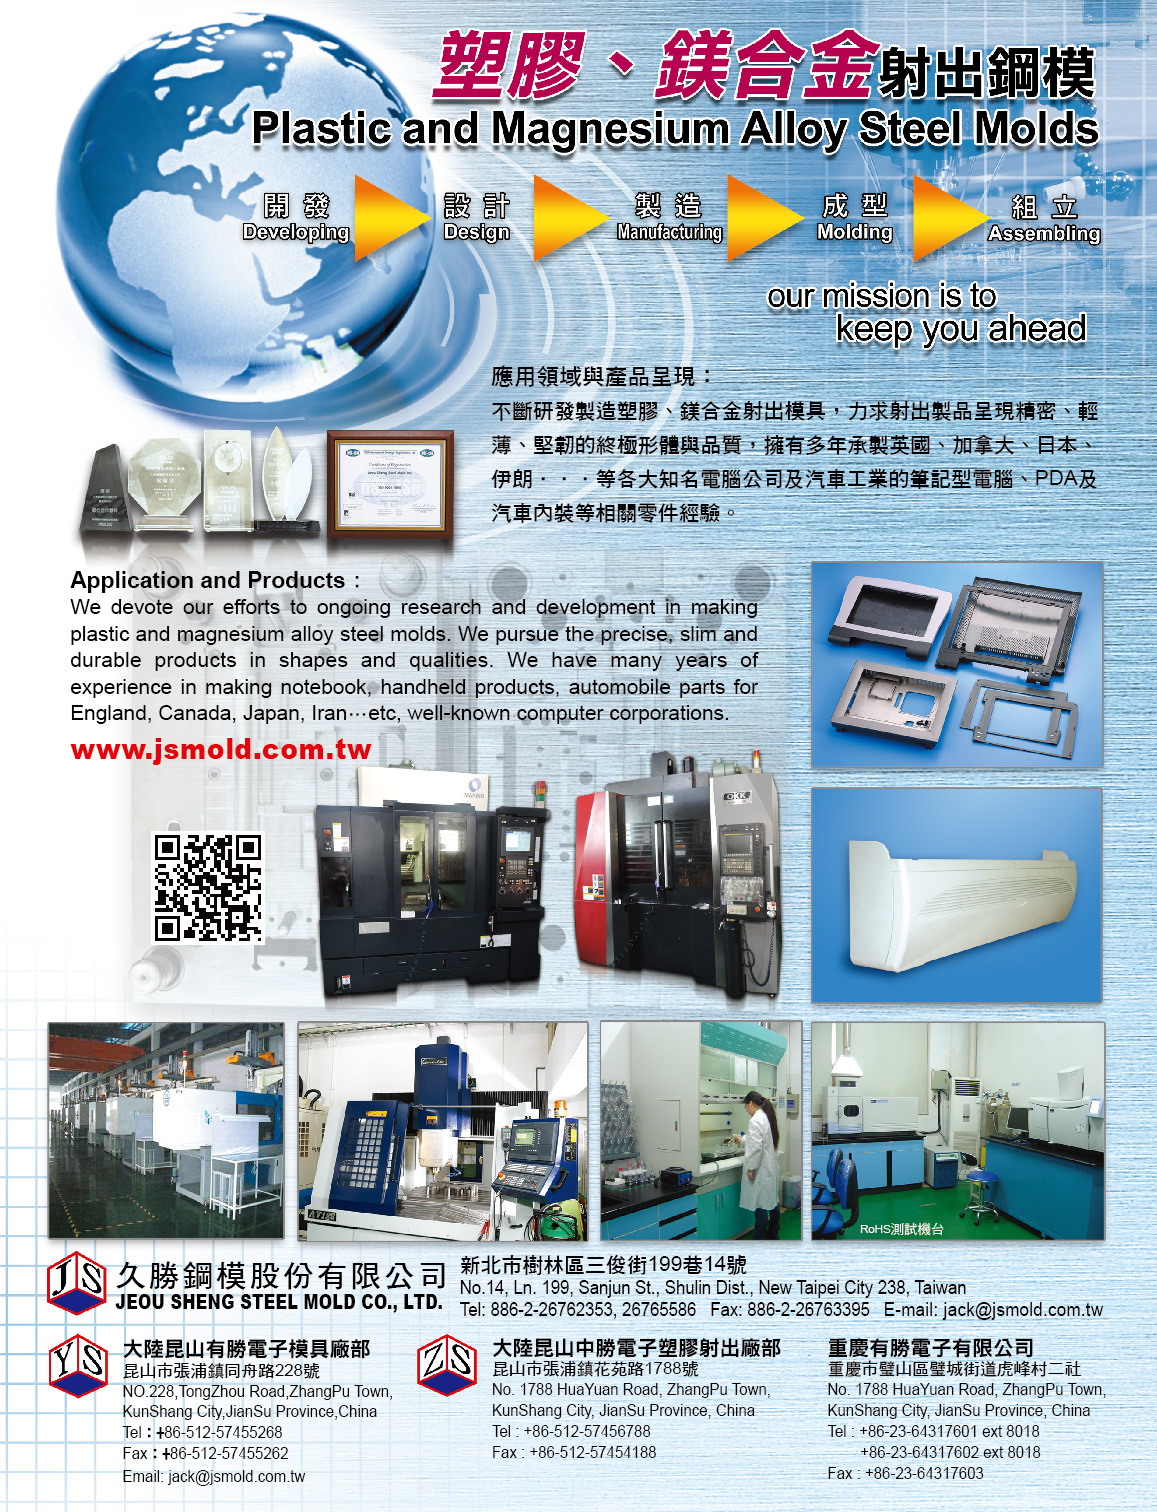 JEOU SHENG STEEL MOLD CO., LTD.